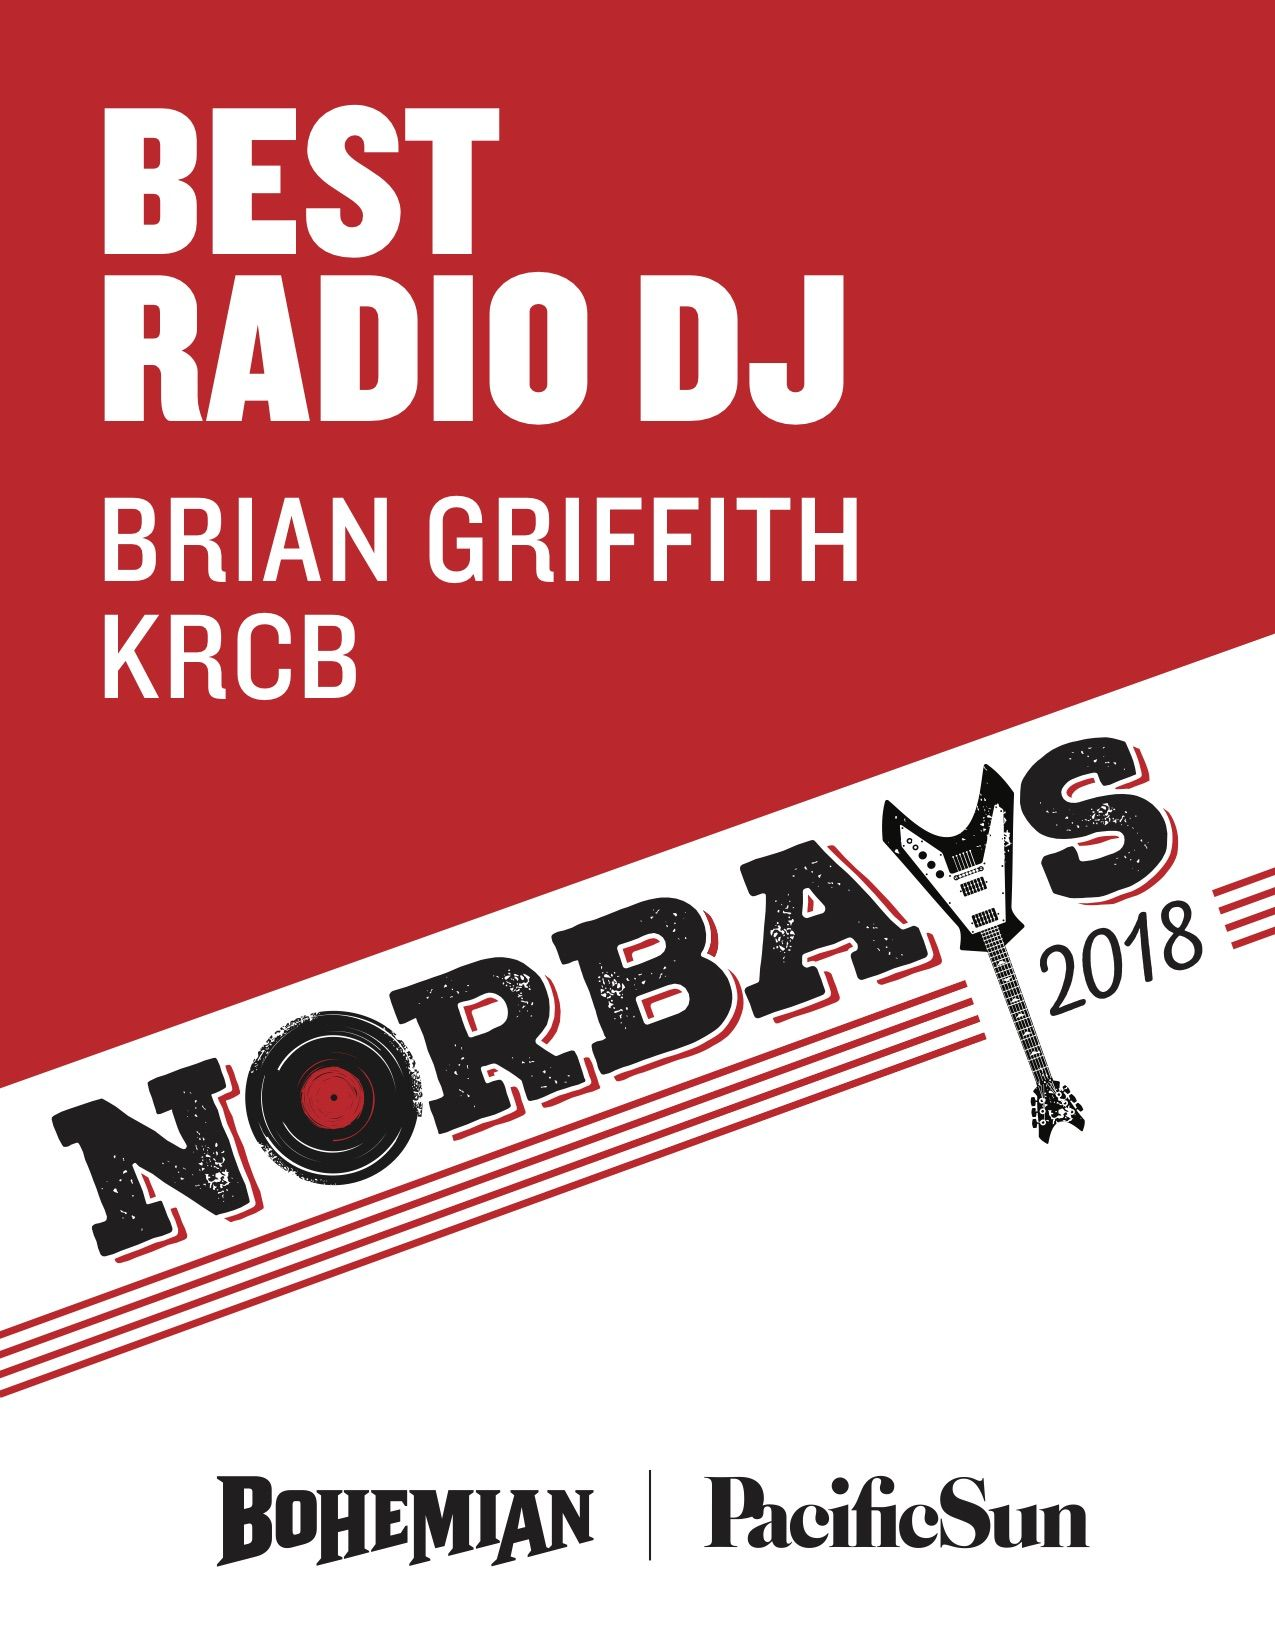 BrianG Norbays2018 Awards